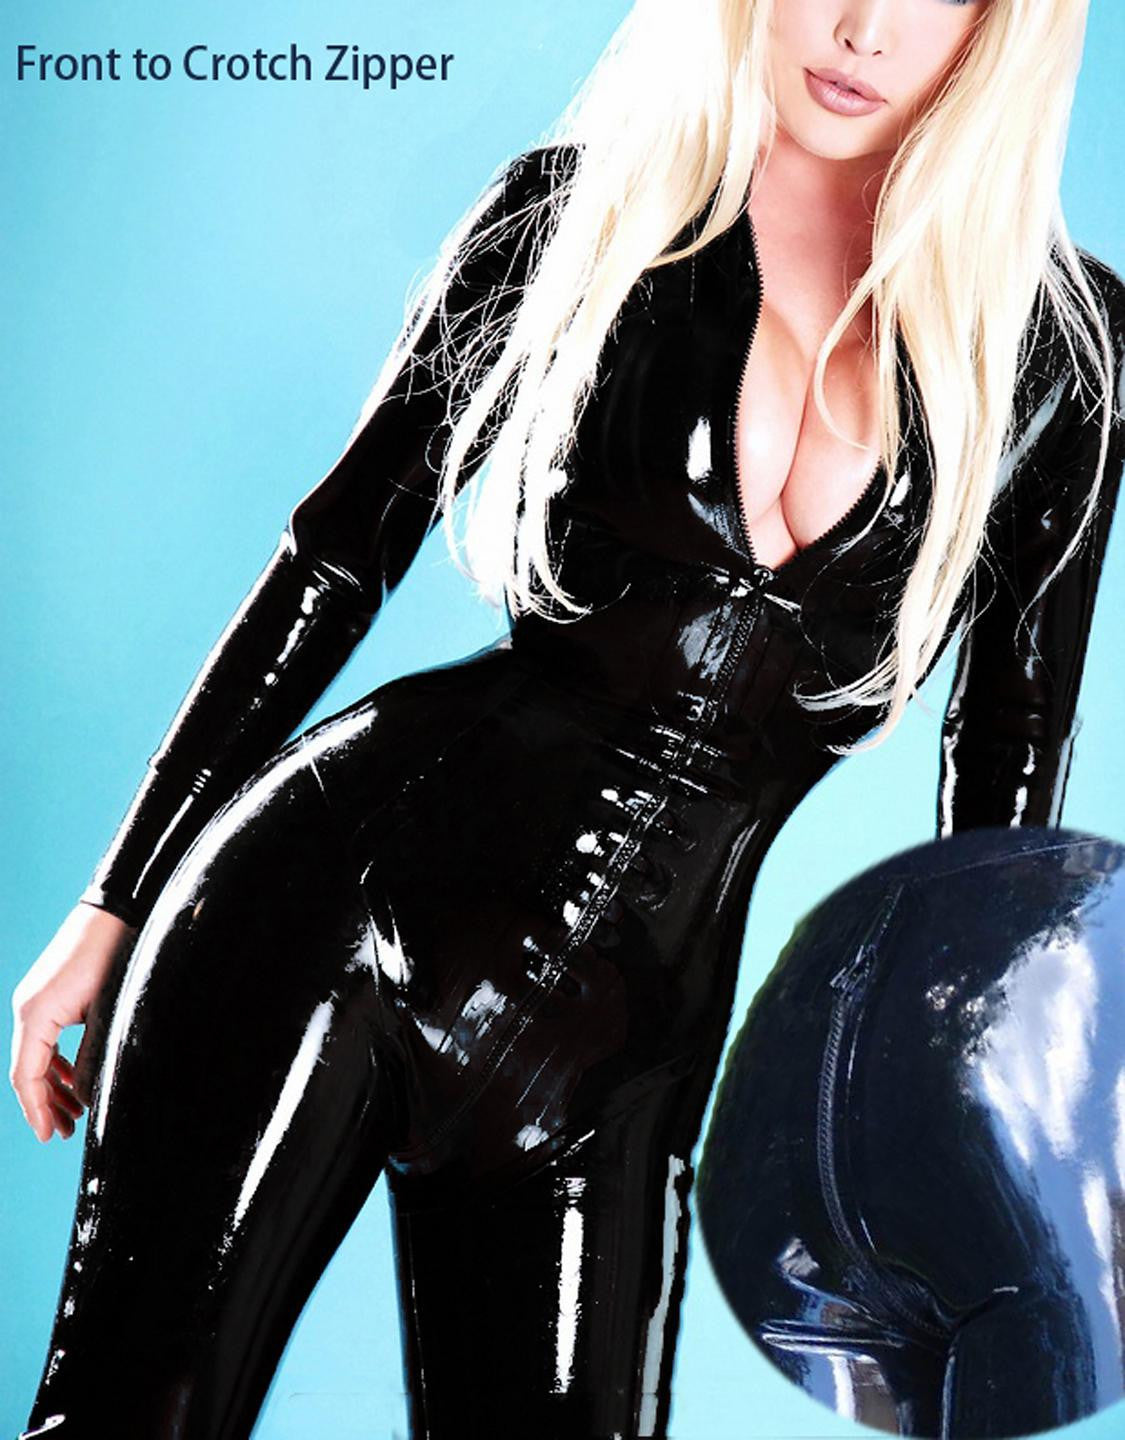 Fashion Cortex Zipper jumpsuit catsuit - Sins & Temptations